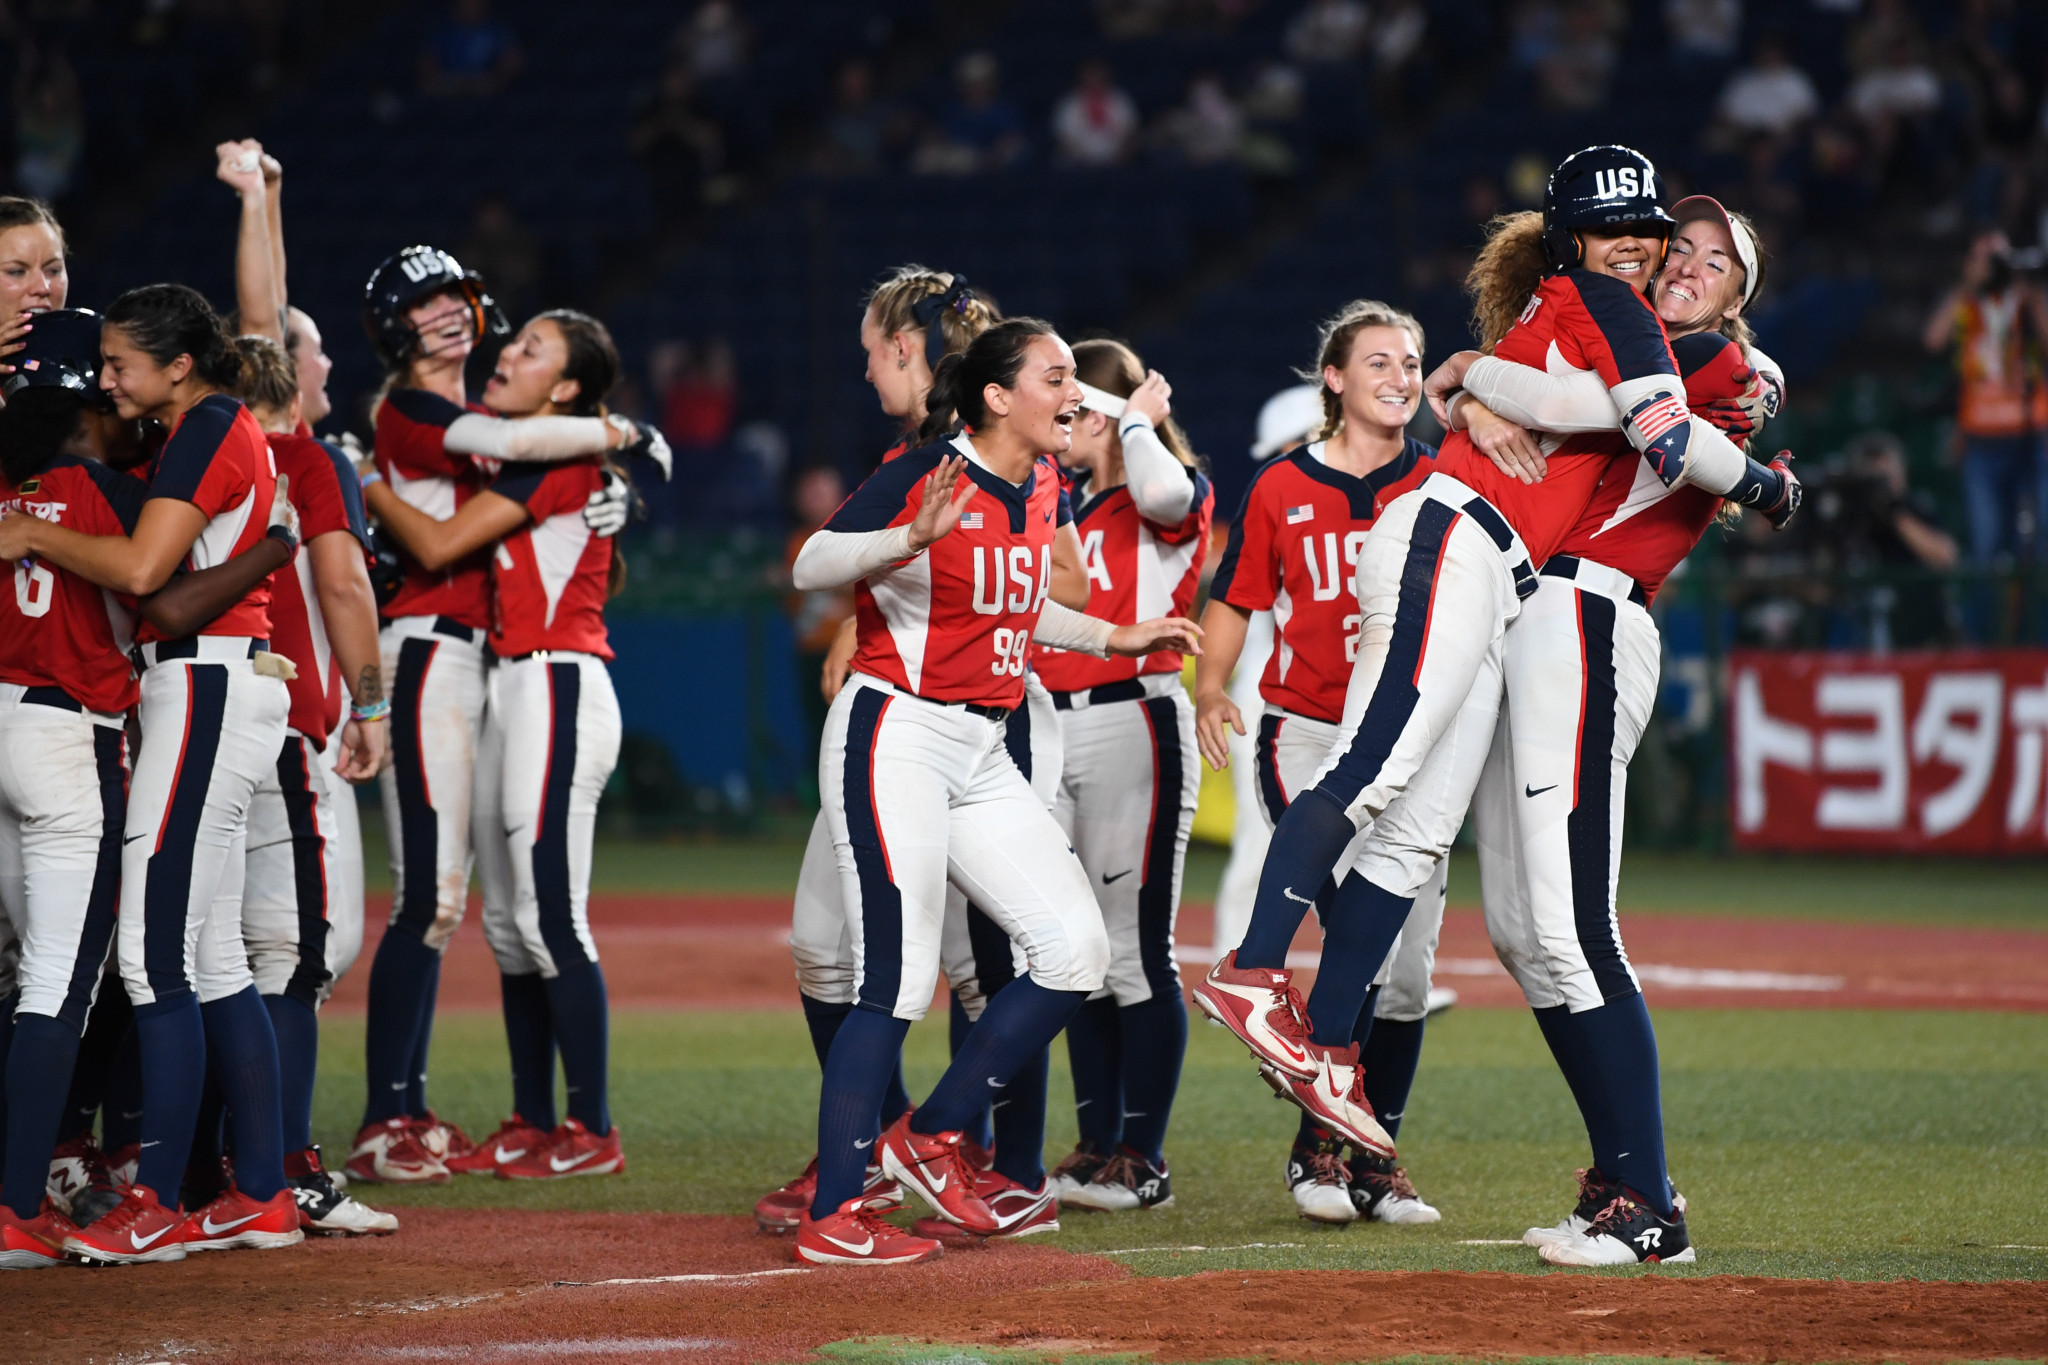 The United States have won the women's Softball World Championships for the second time in a row, after beating Japan 7-6 in Chiba ©Getty Images